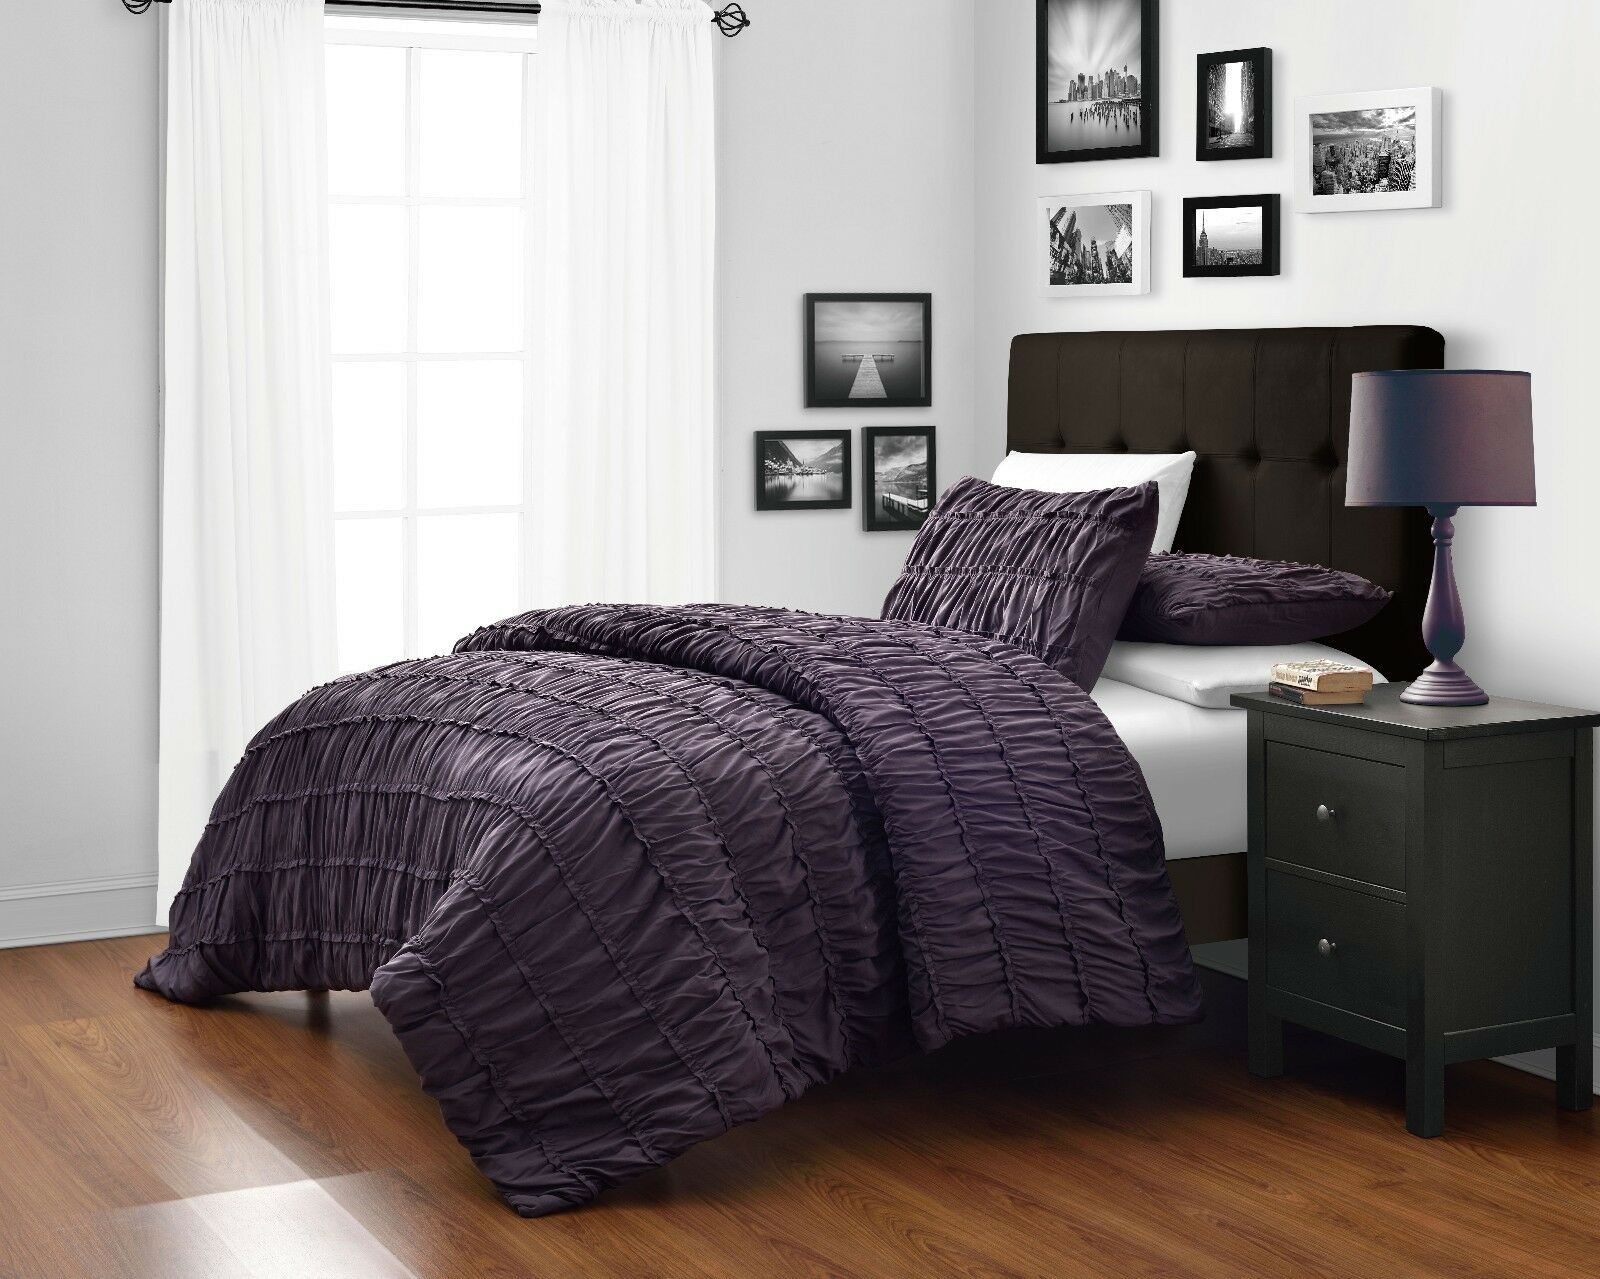 King Size Bedroom Comforter Sets purple king comforter sets - luxurious 7-piece comforter set king